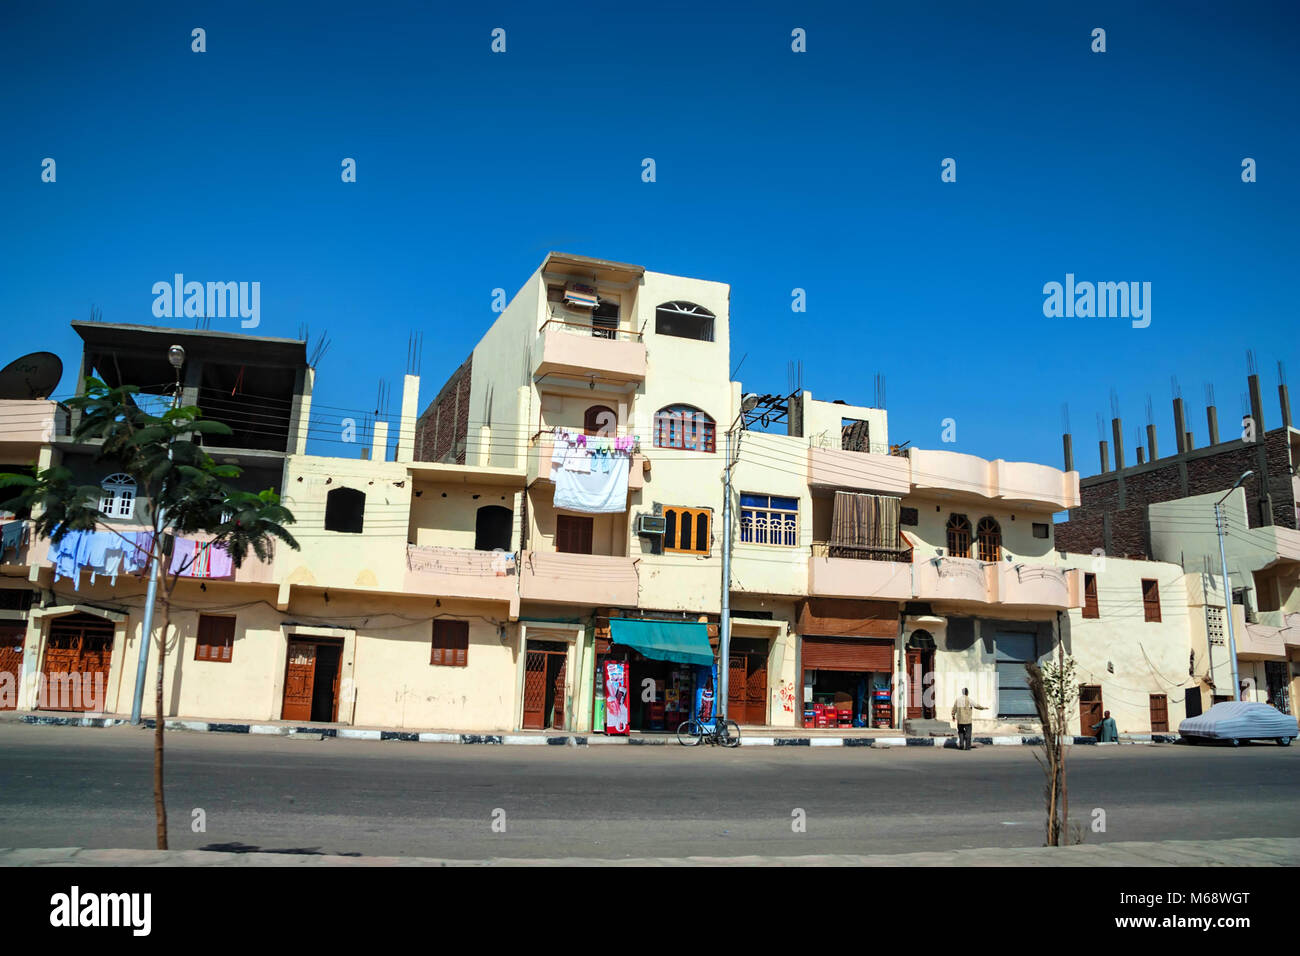 LUXOR, EGYPT - FEBRUARY 17, 2010: Buildings of Luxor, Egypt. - Stock Image